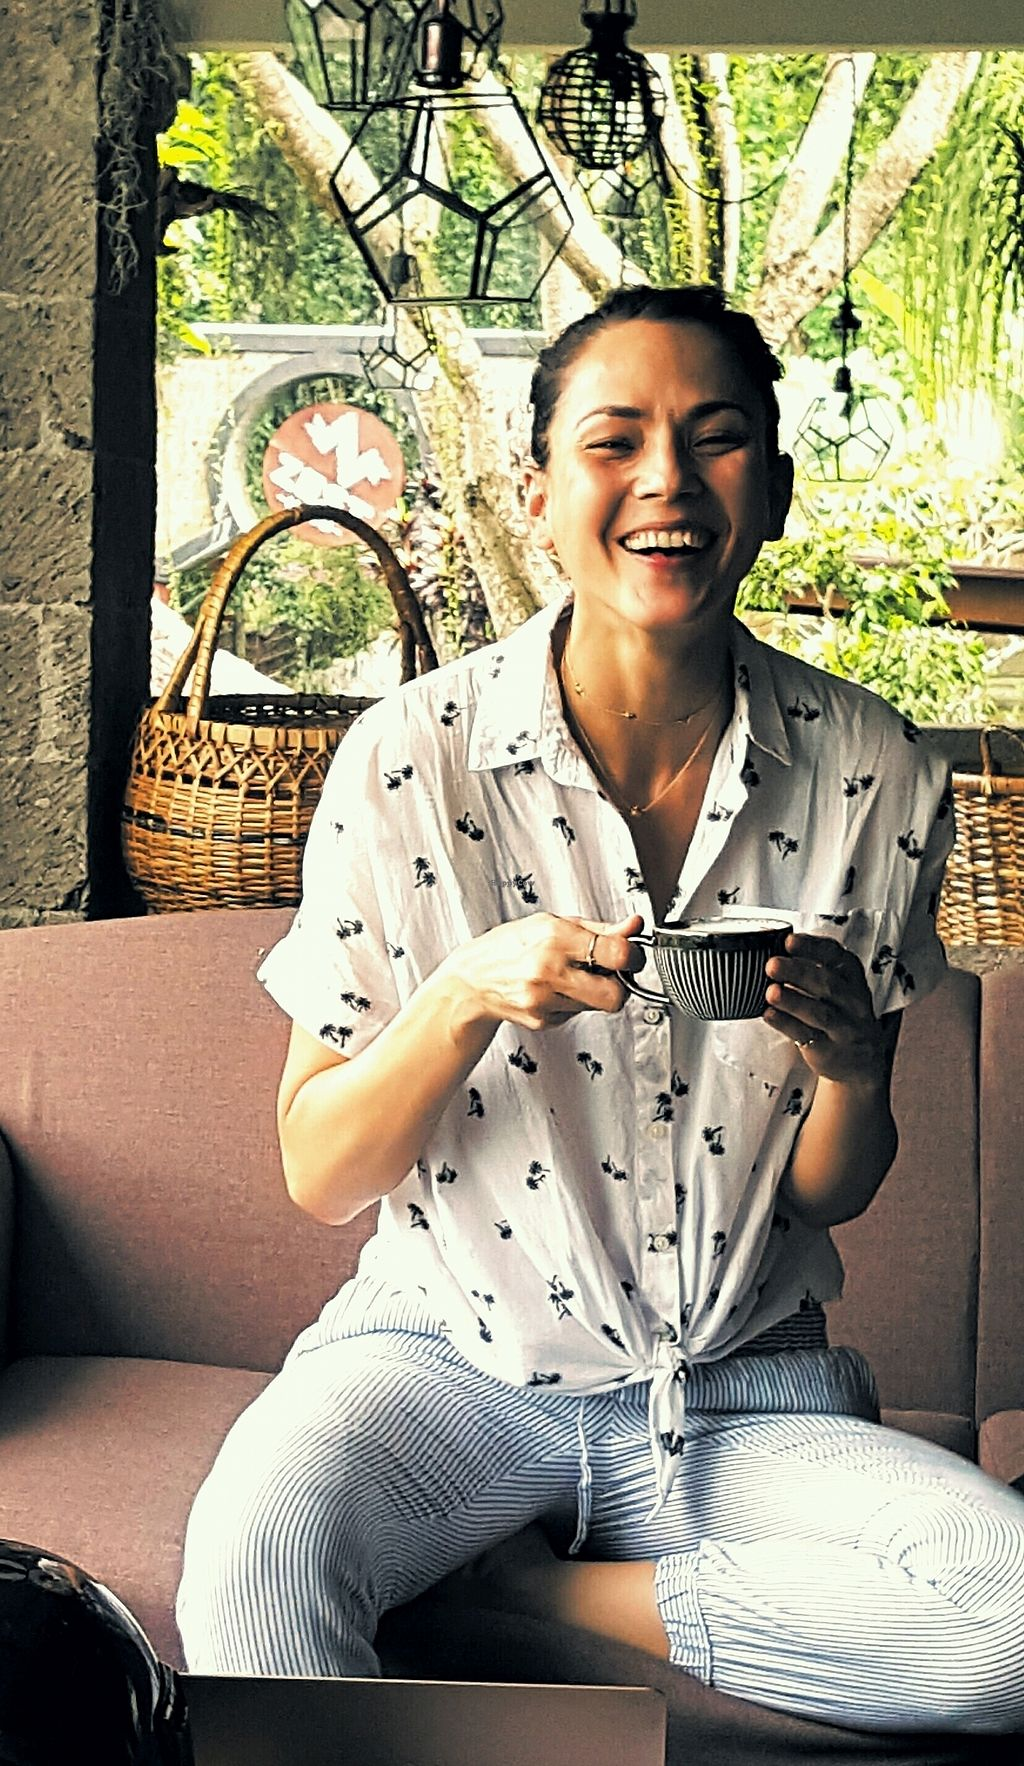 """Photo of Zest Ubud  by <a href=""""/members/profile/Piairho"""">Piairho</a> <br/>cacao latte <br/> March 27, 2018  - <a href='/contact/abuse/image/115319/376878'>Report</a>"""